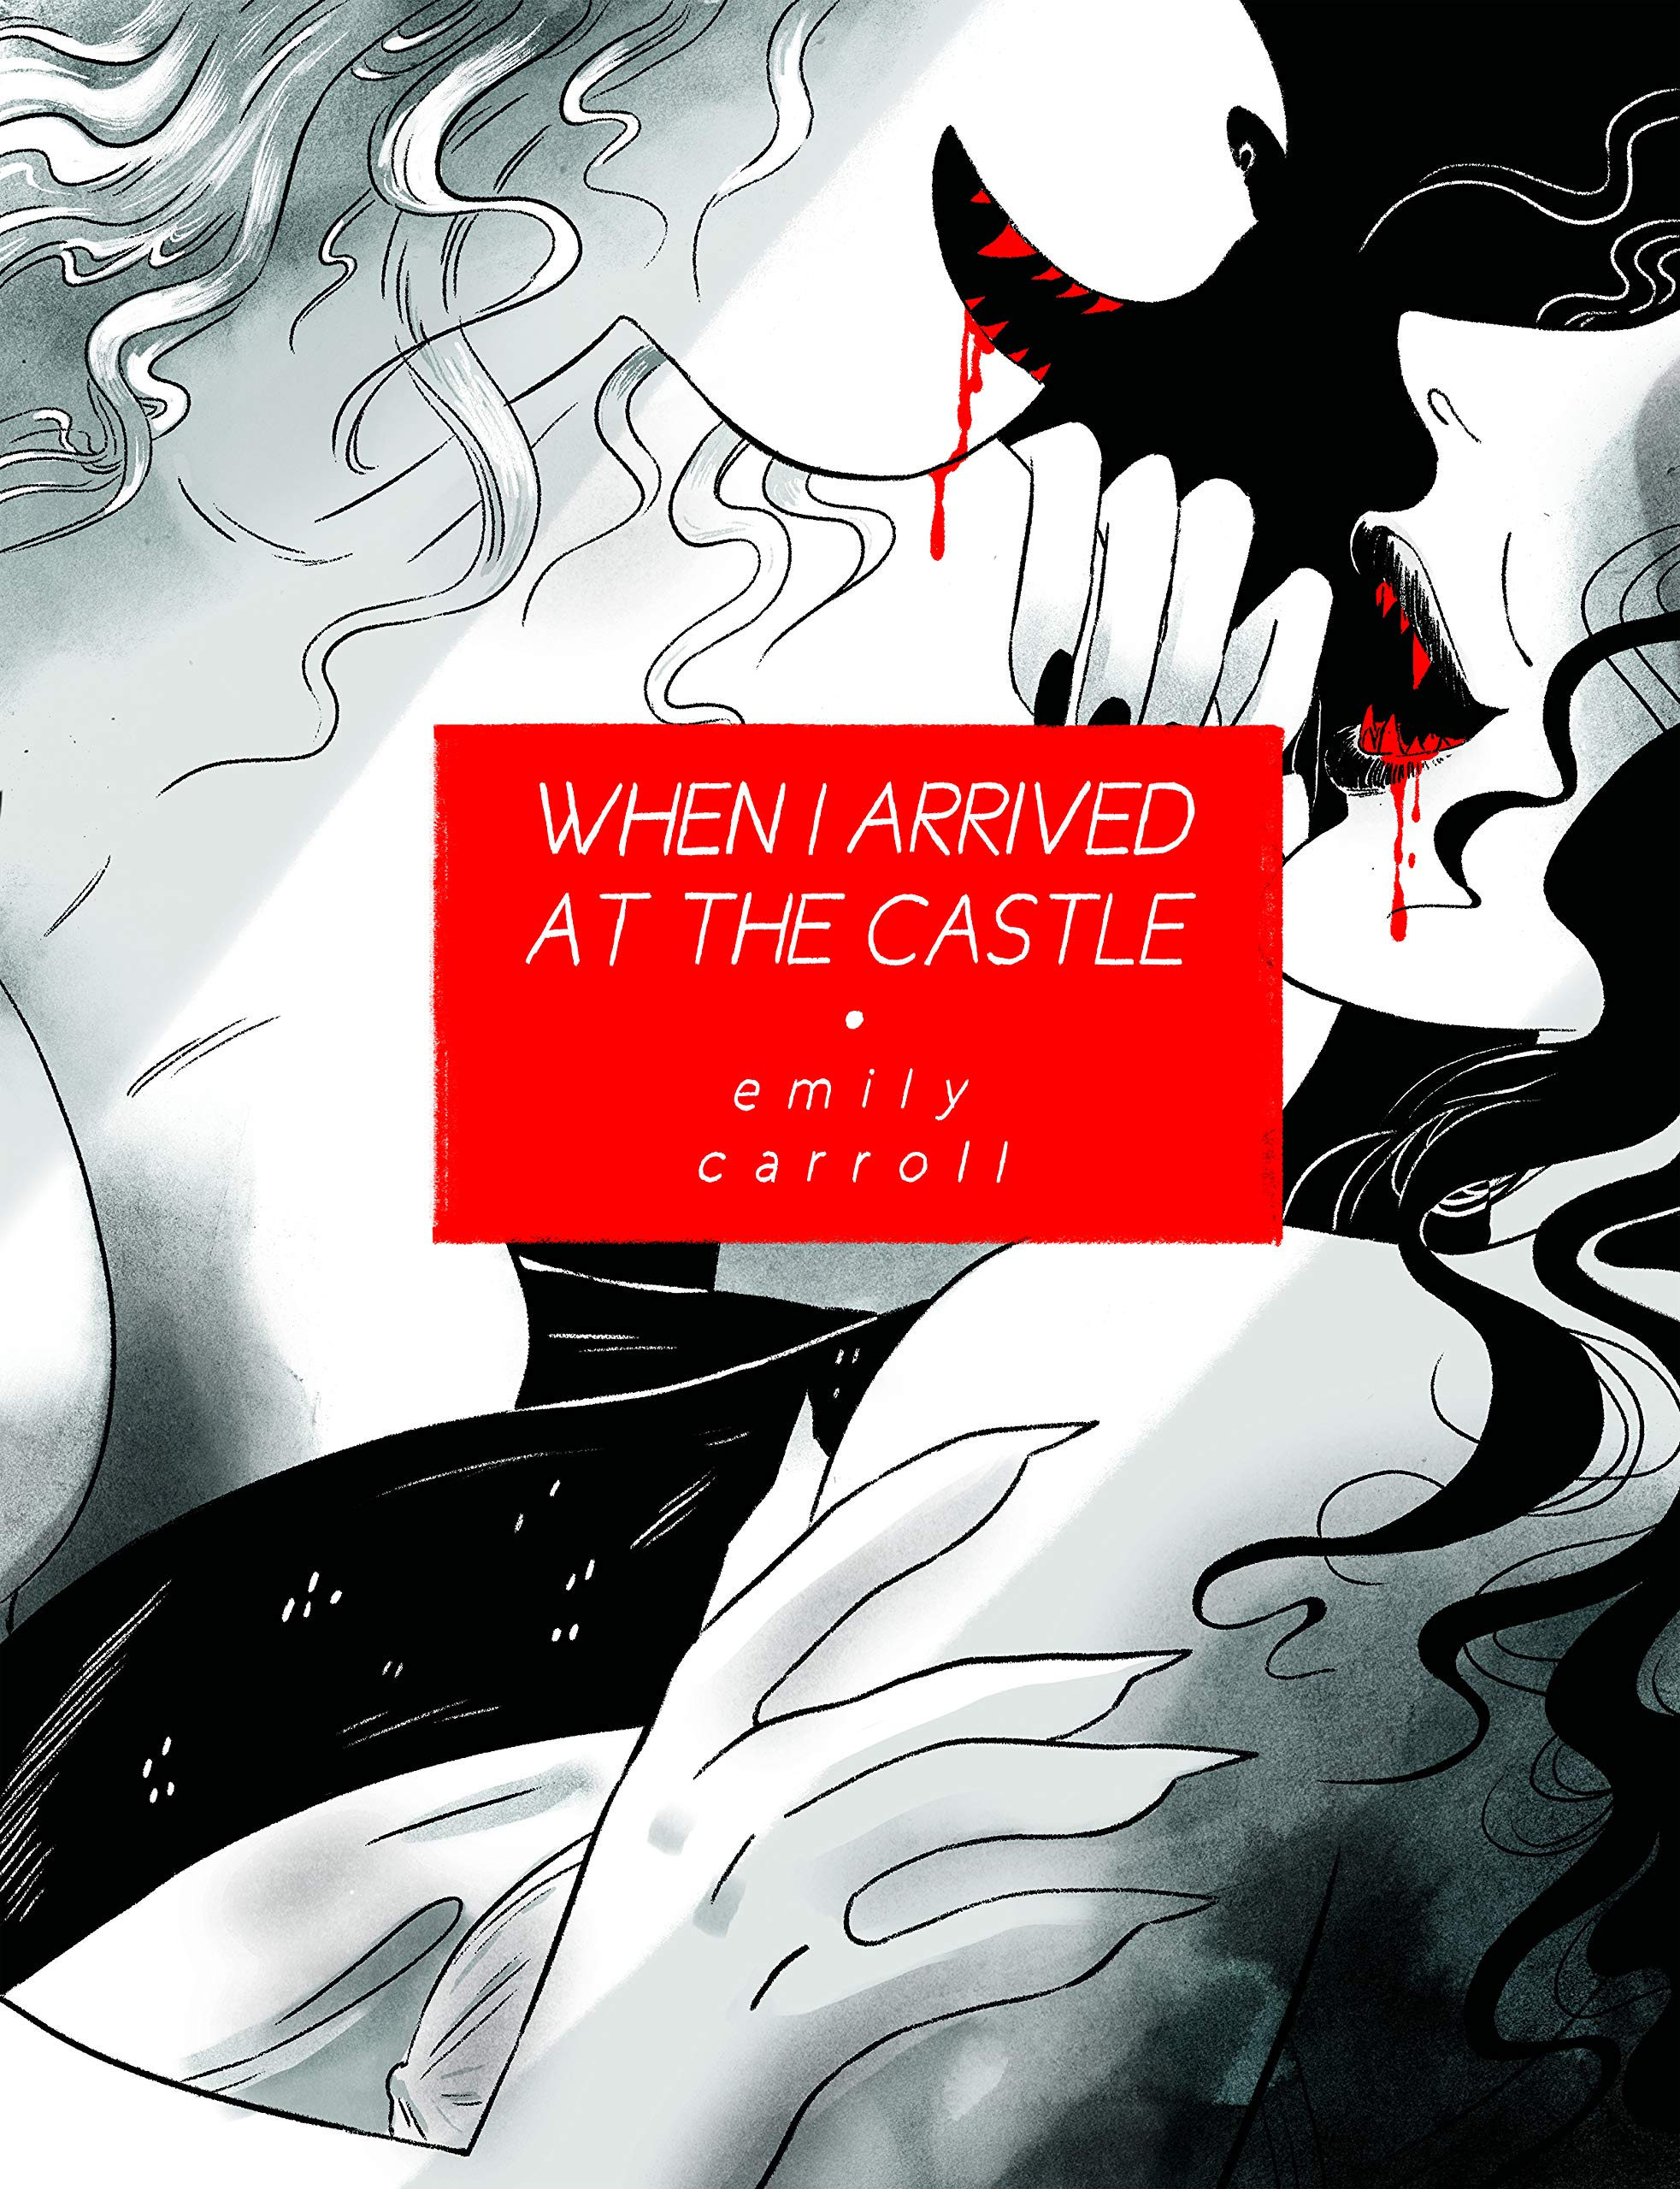 WHEN I ARRIVED AT THE CASTLE by Emily Carroll (Koyama Press, April 2019)